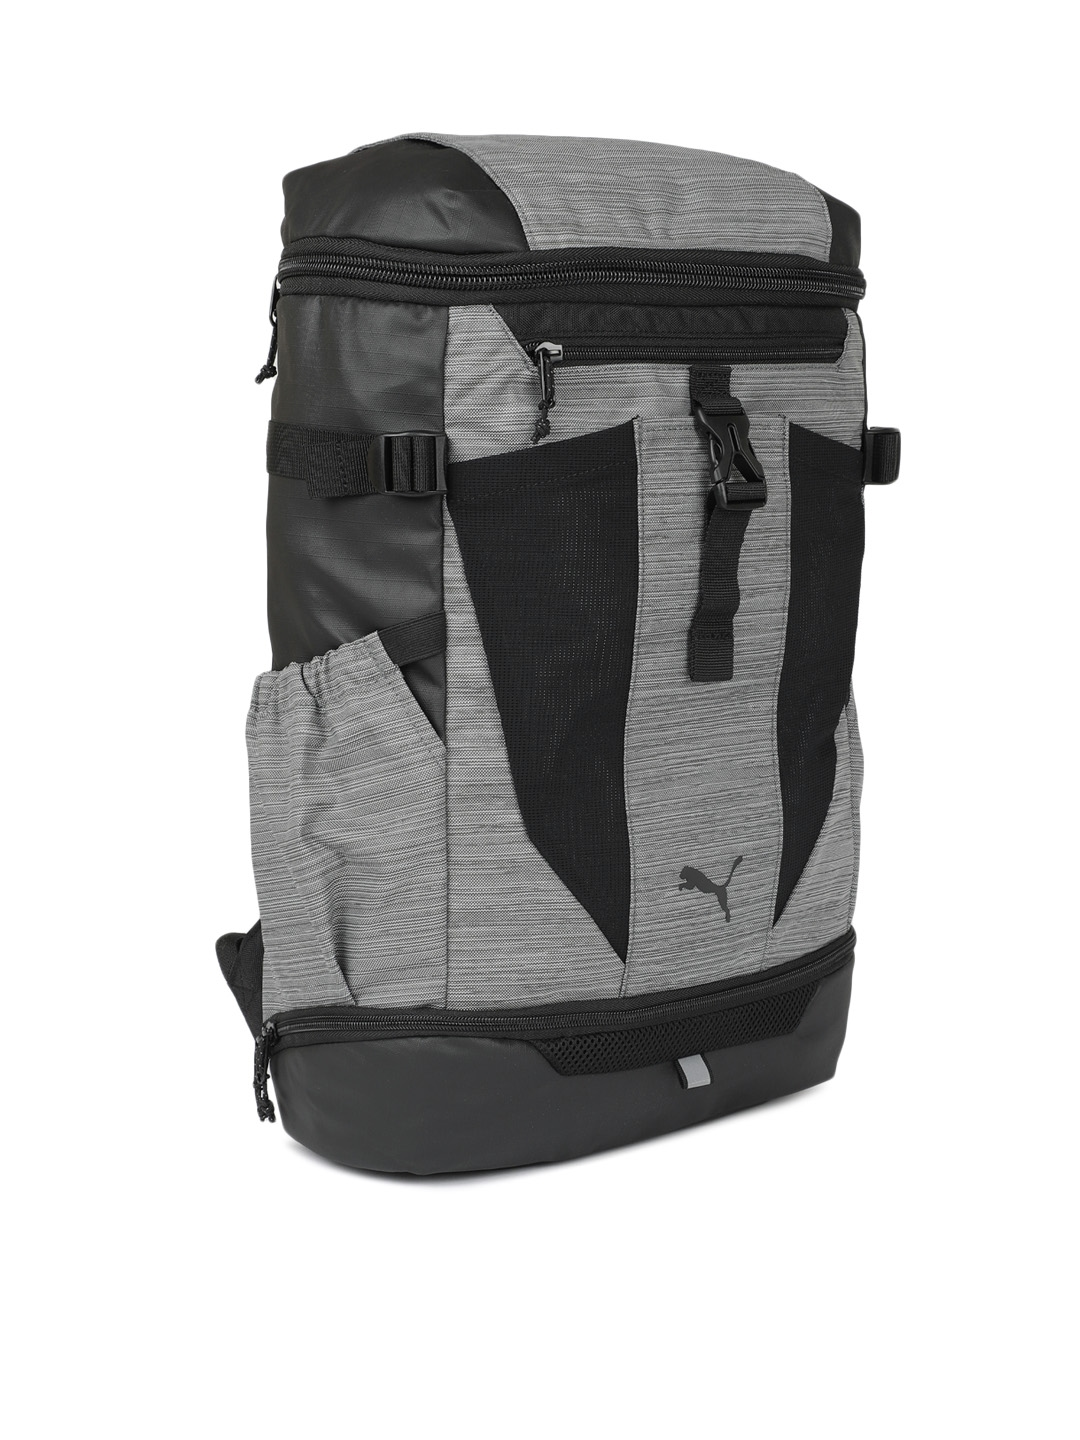 4c6fbc4252 Buy Puma Unisex Grey   Black Colourblocked Energy Backpack ...